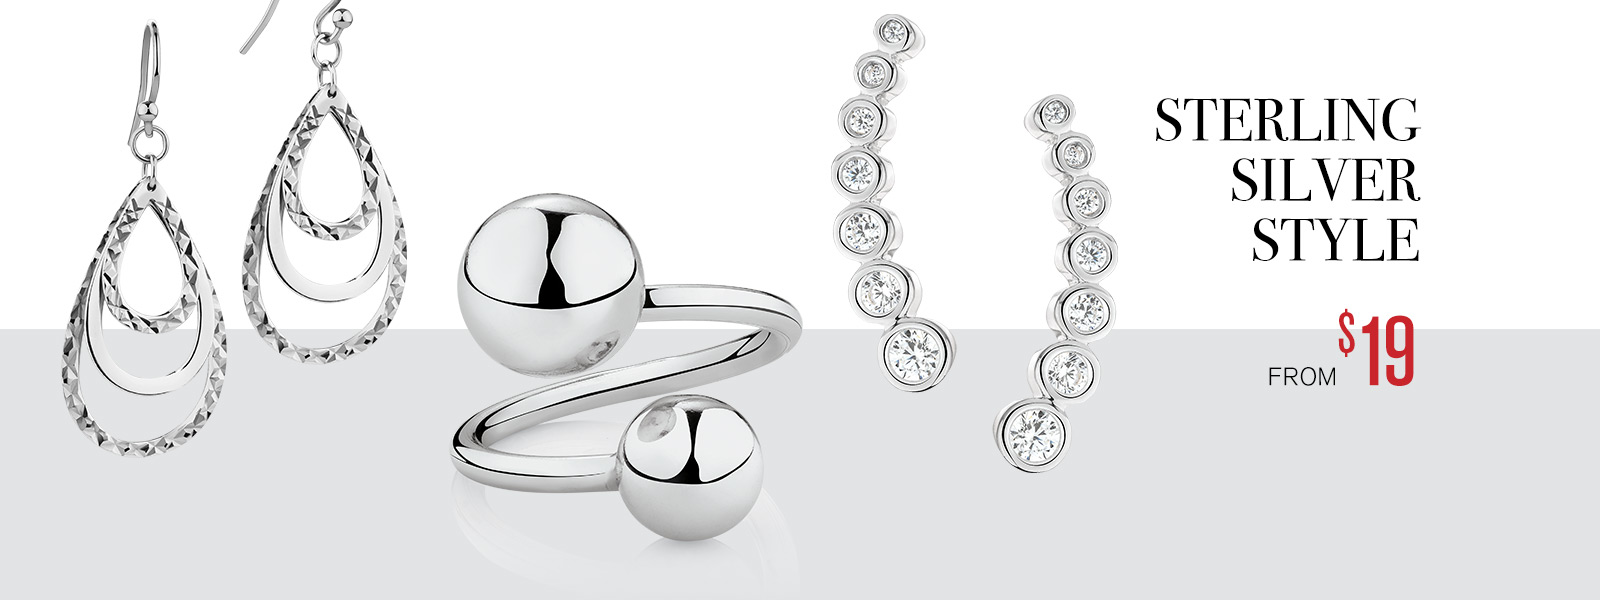 STERLING SILVER STYLE